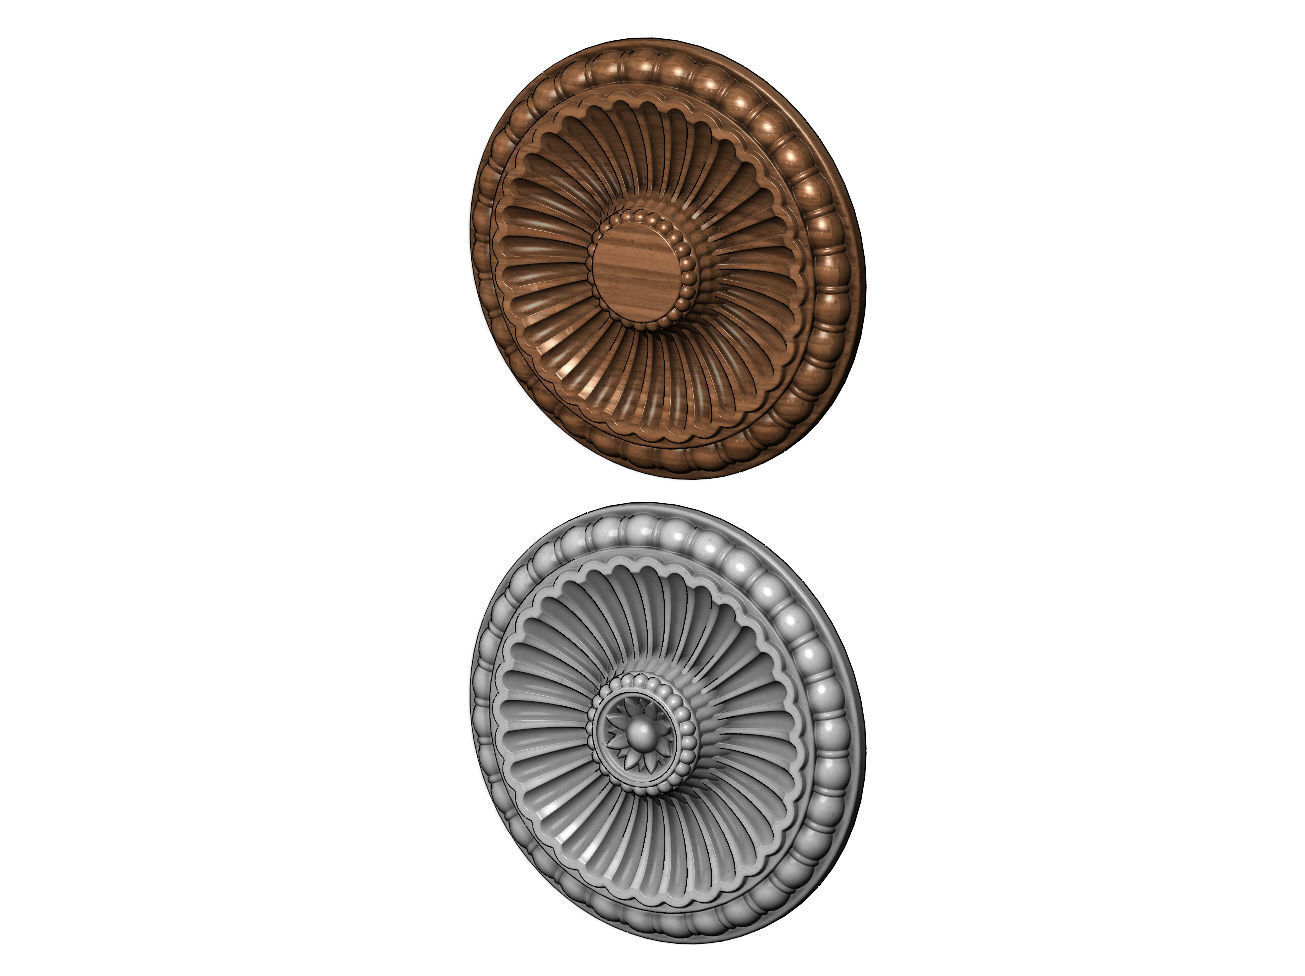 Classical ceiling medallion and Rosette